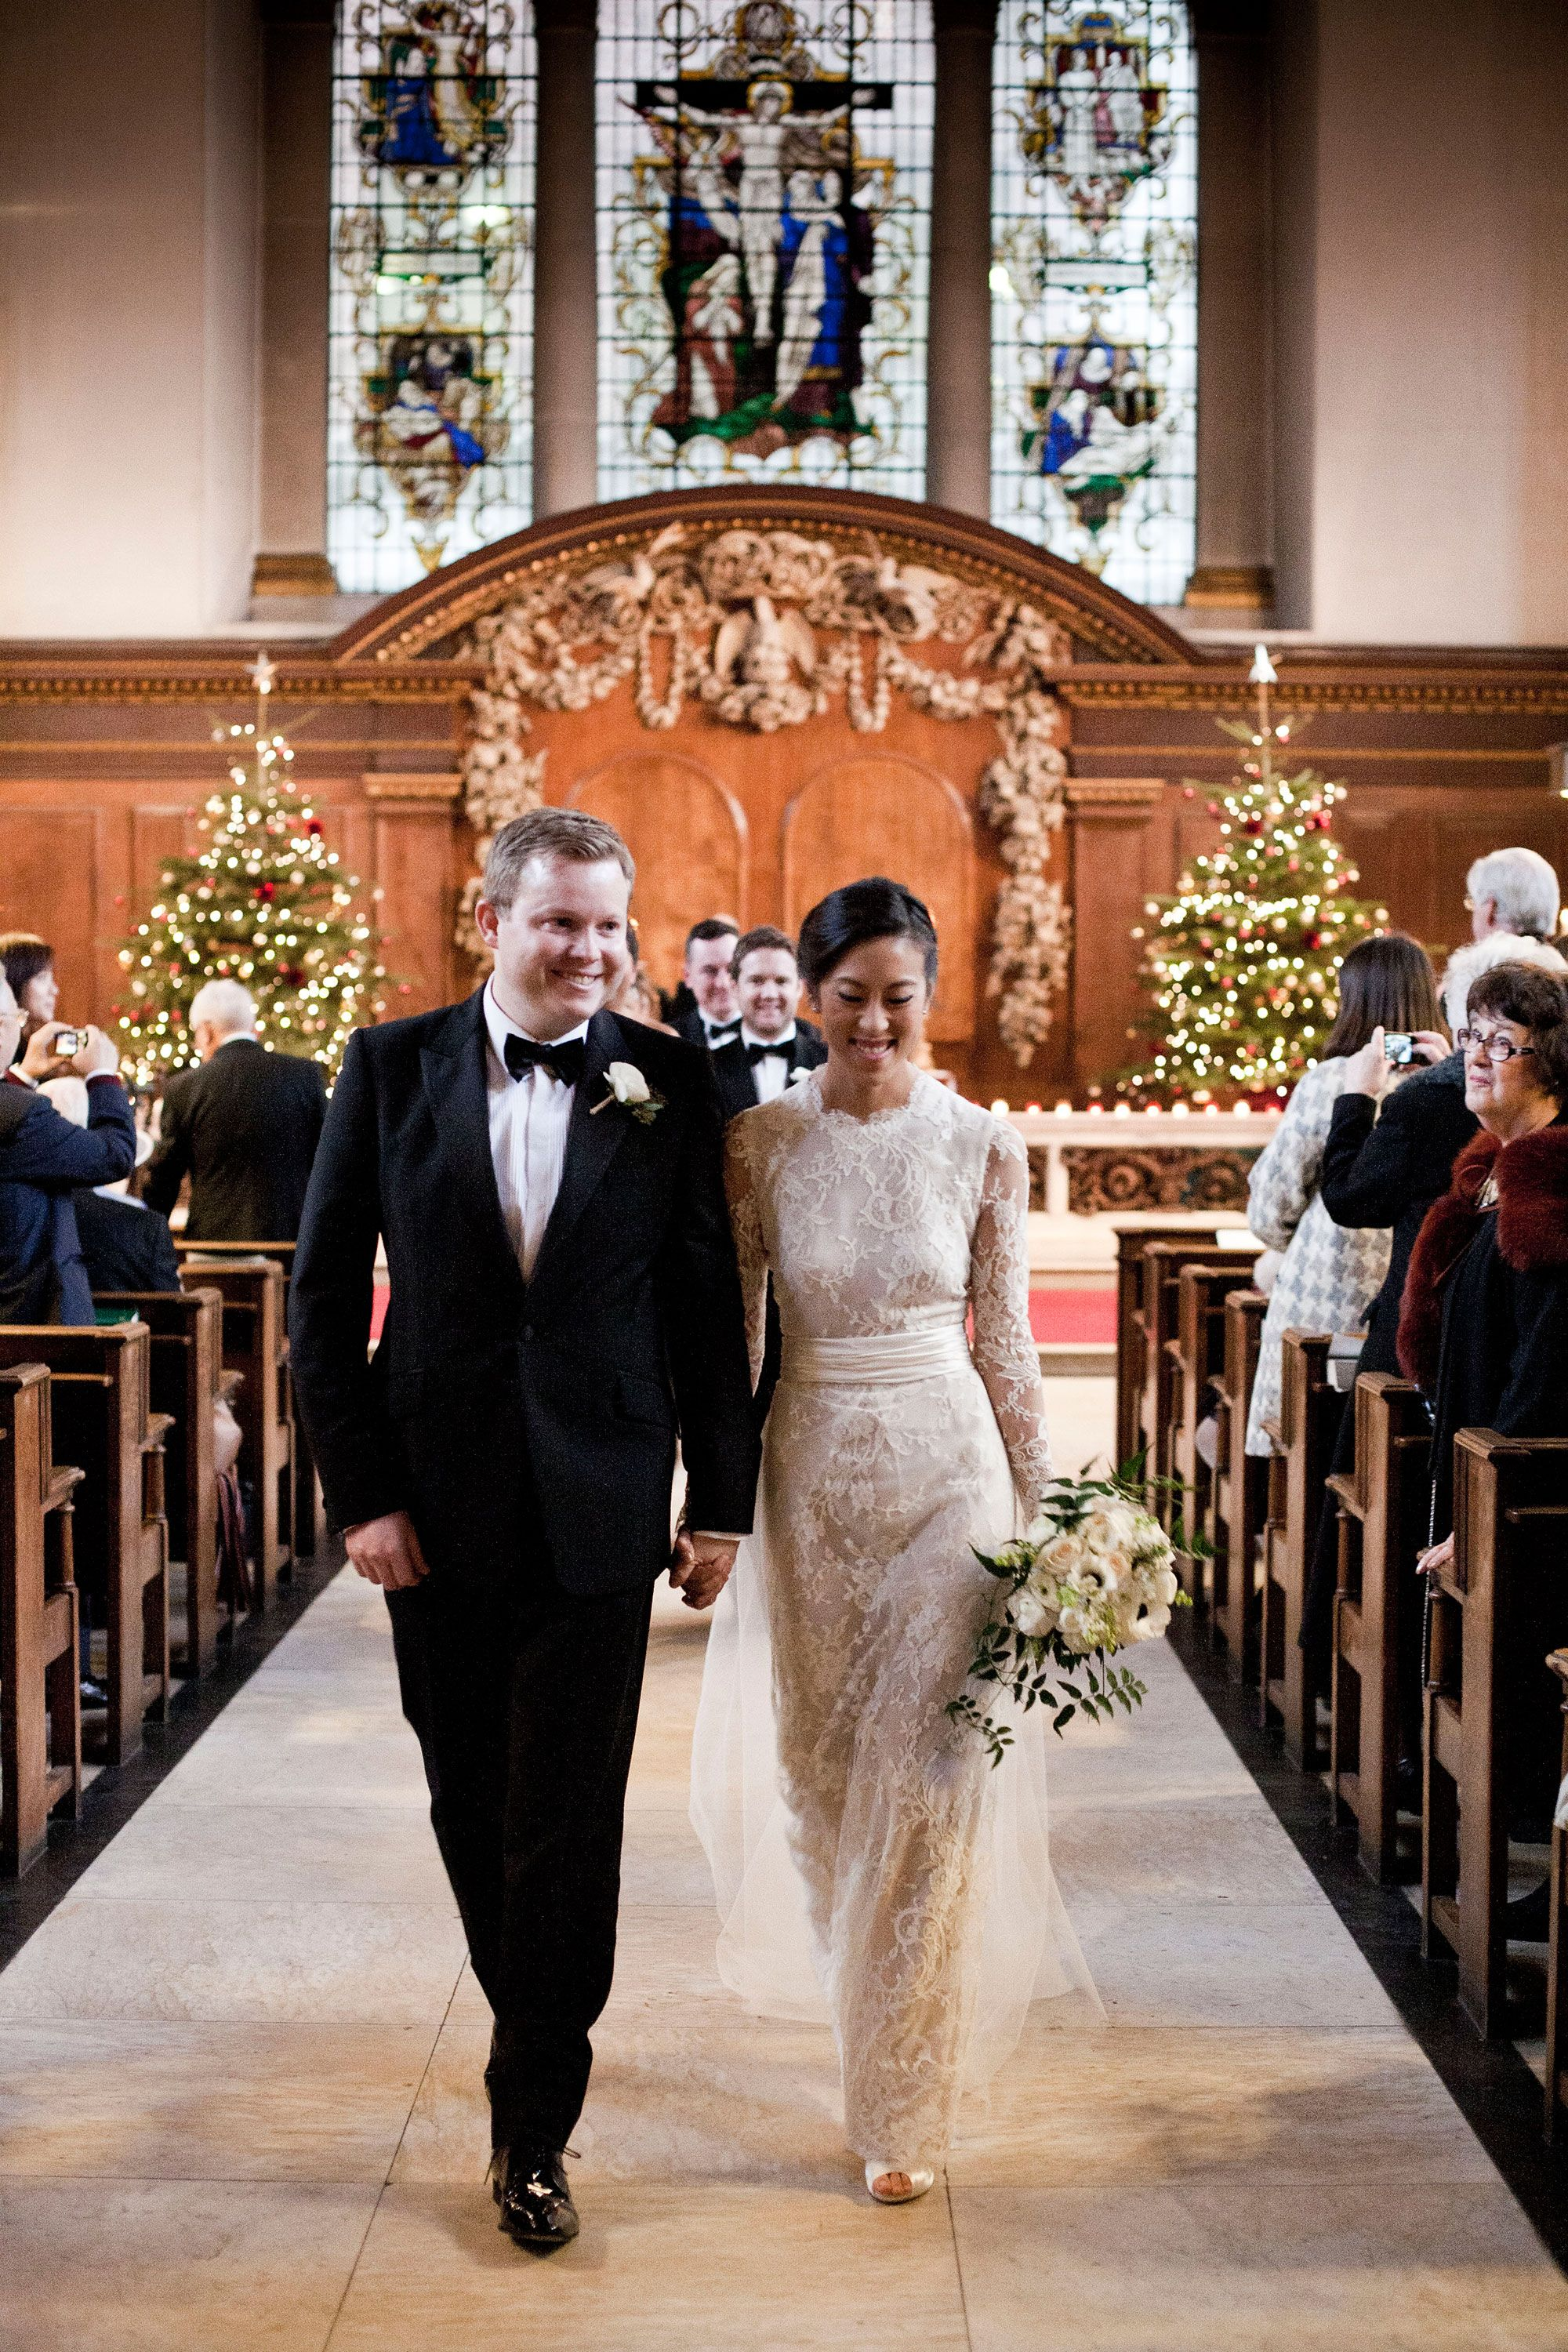 A Round Up Of Beautiful Gowns Worn By Real Brides On Their Wedding Day